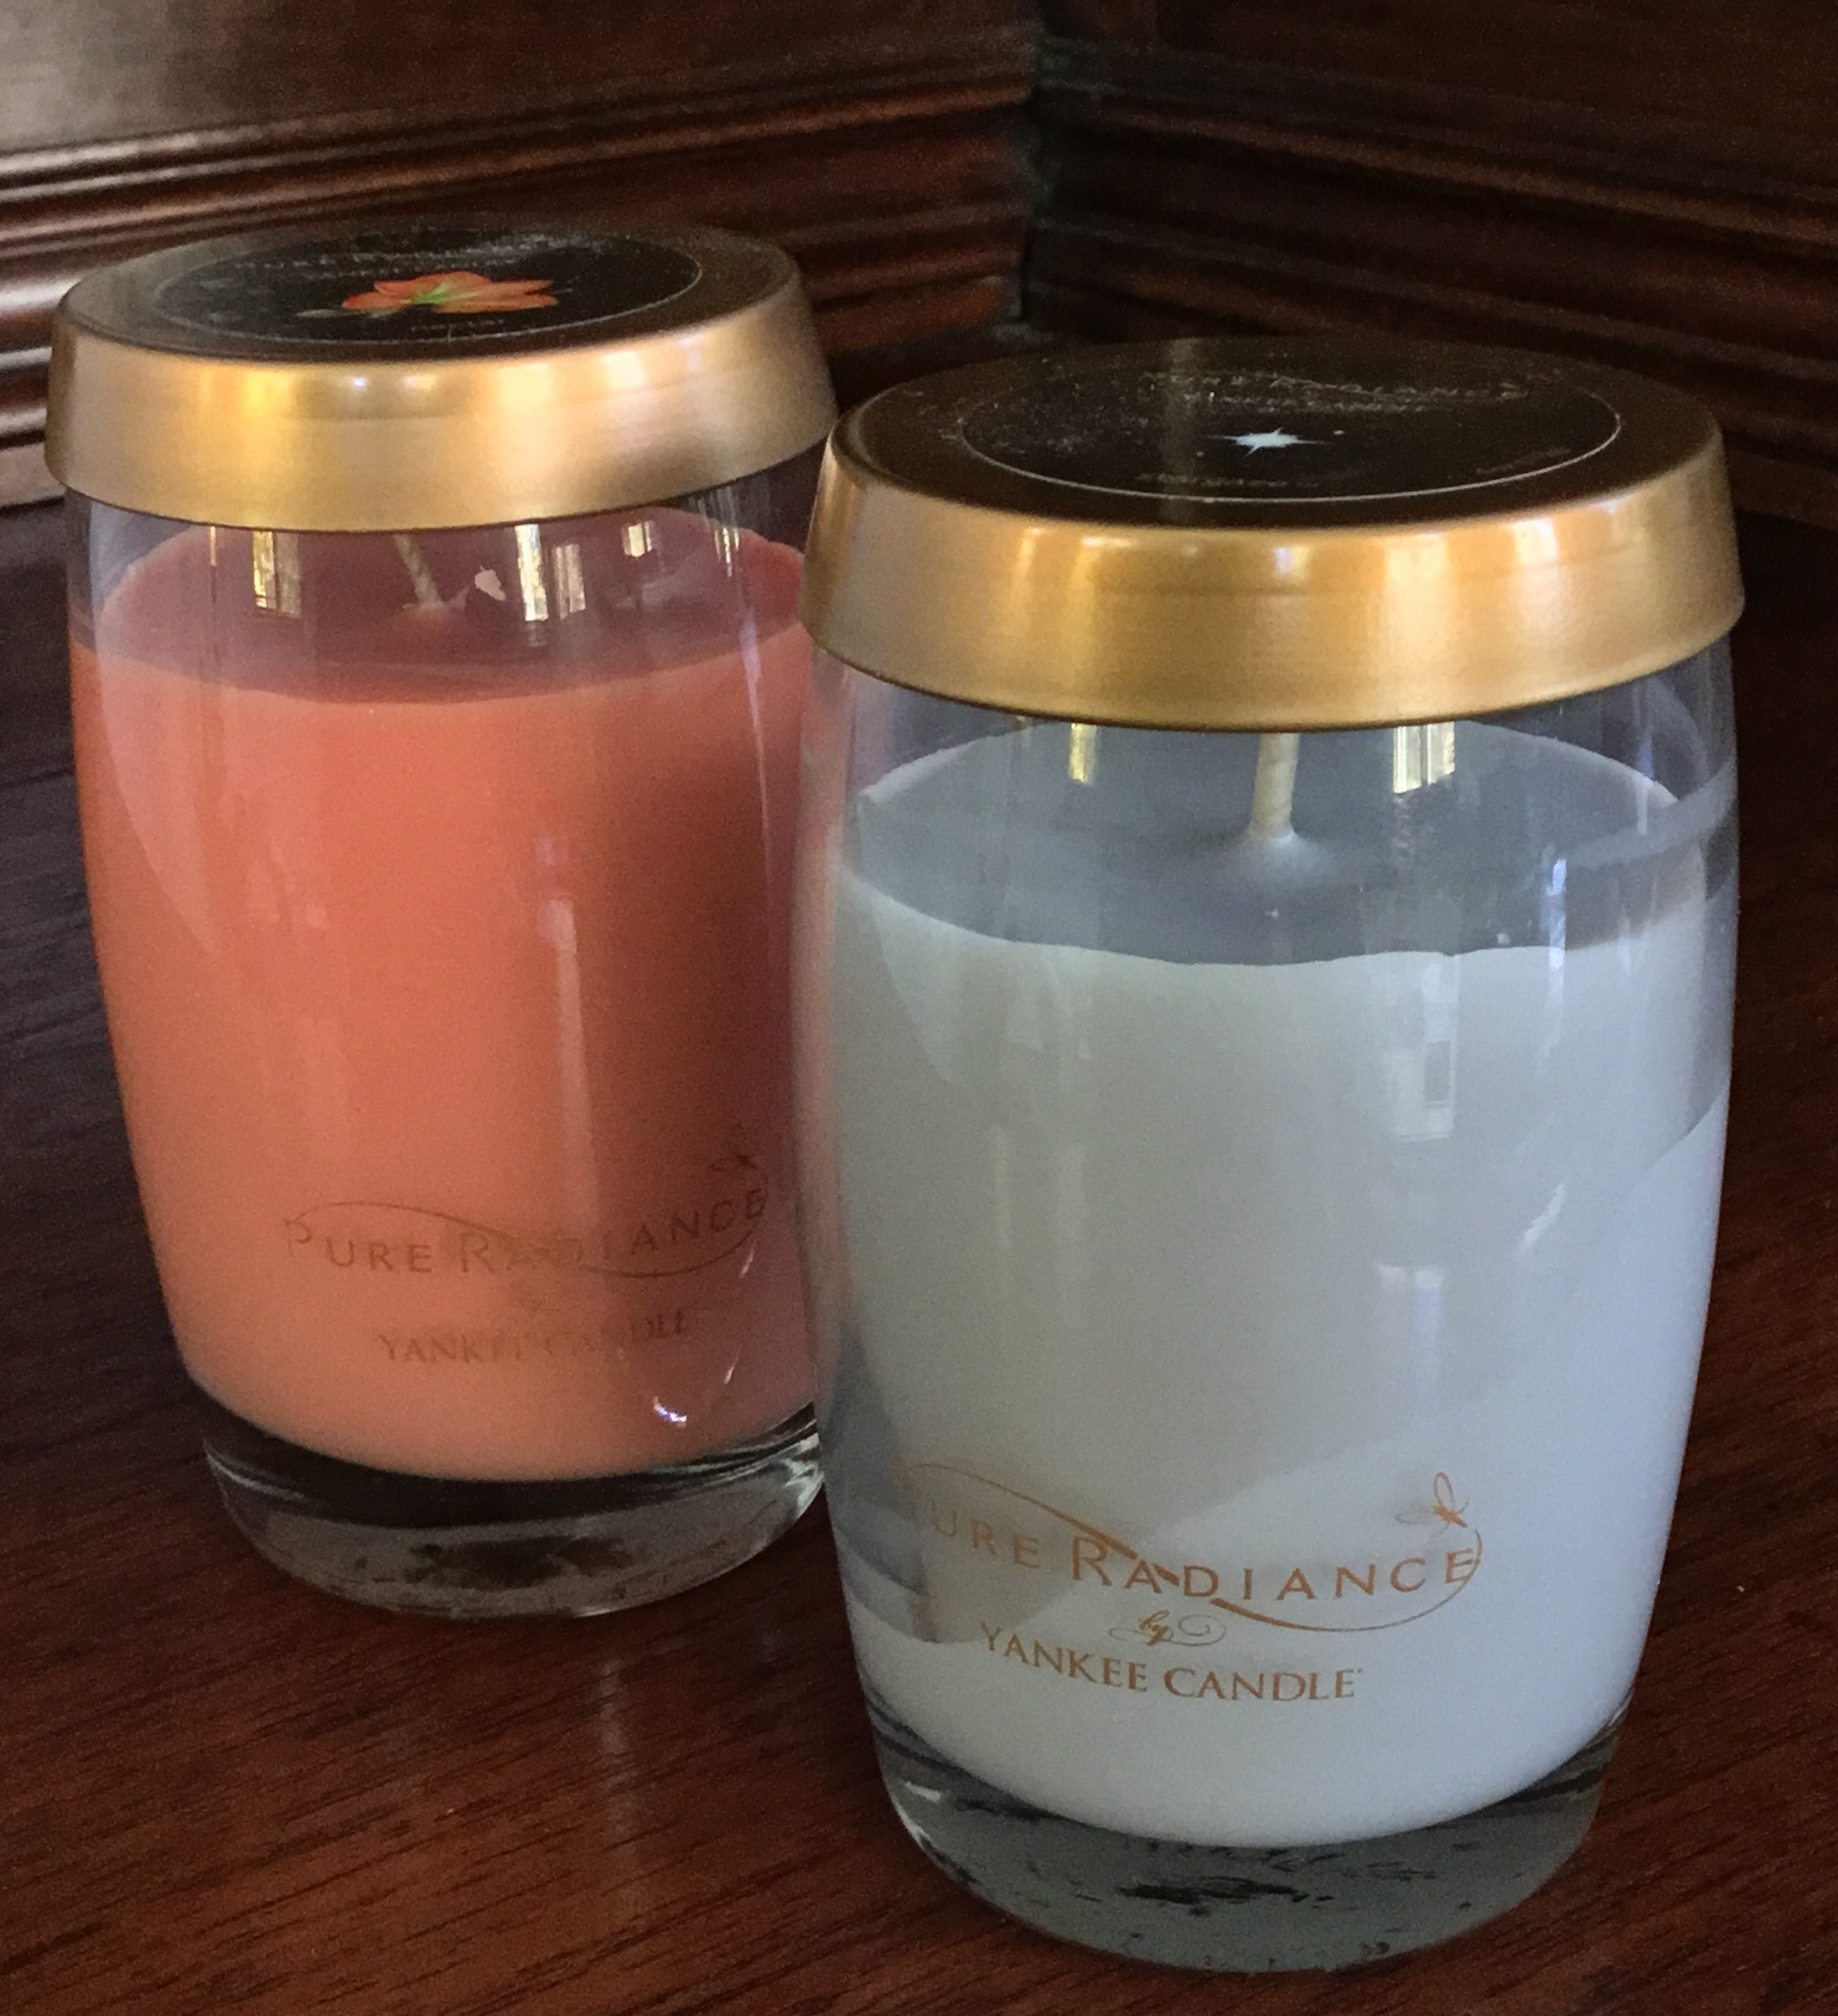 Yankee Candle Pure Radiance Candles, Set of 2